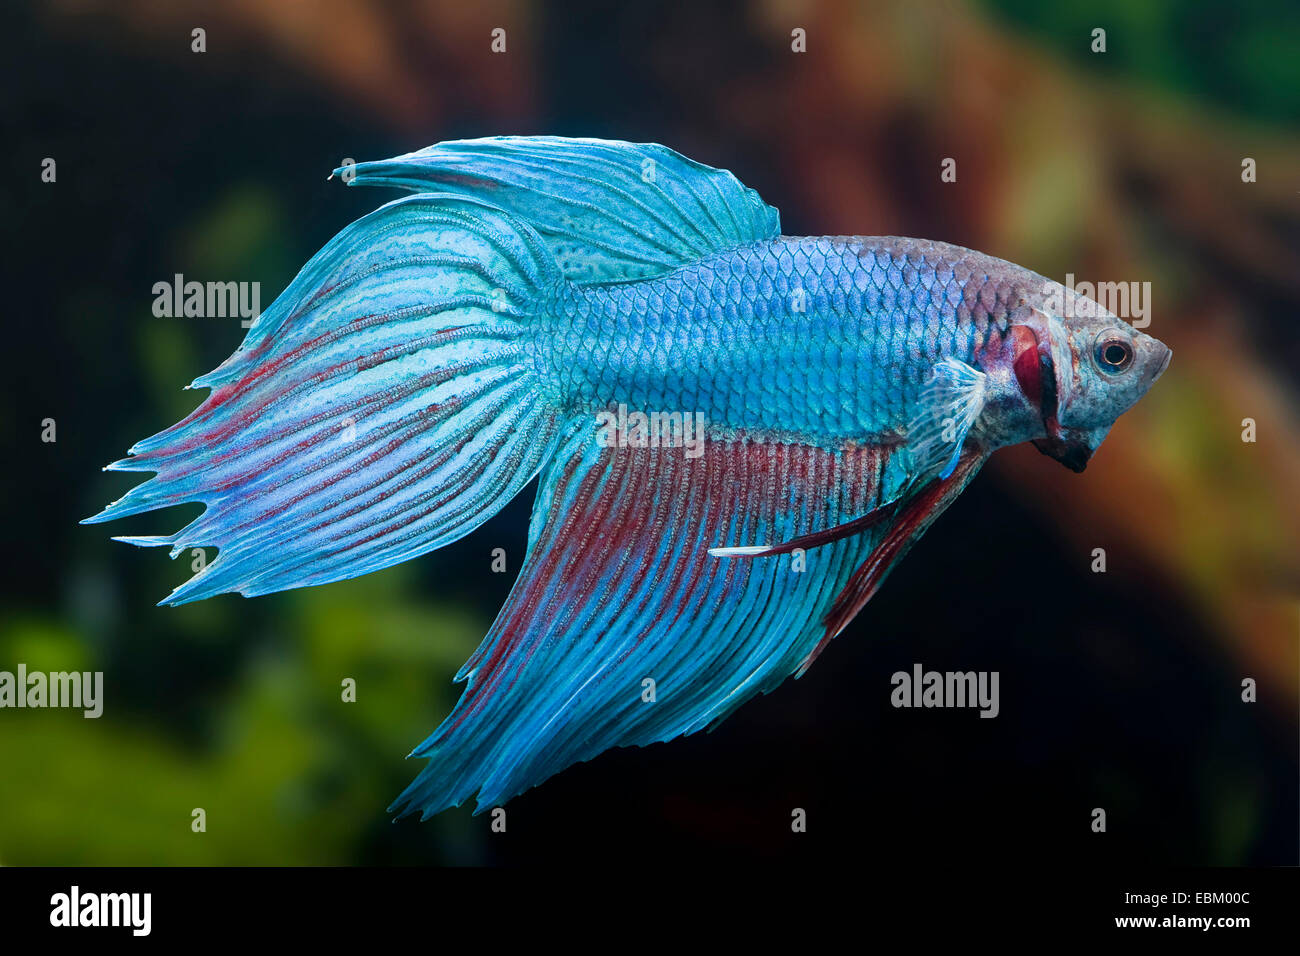 Siamese fighting fish, Siamese fighter (Betta splendens), breed Longtail turquoise - Stock Image